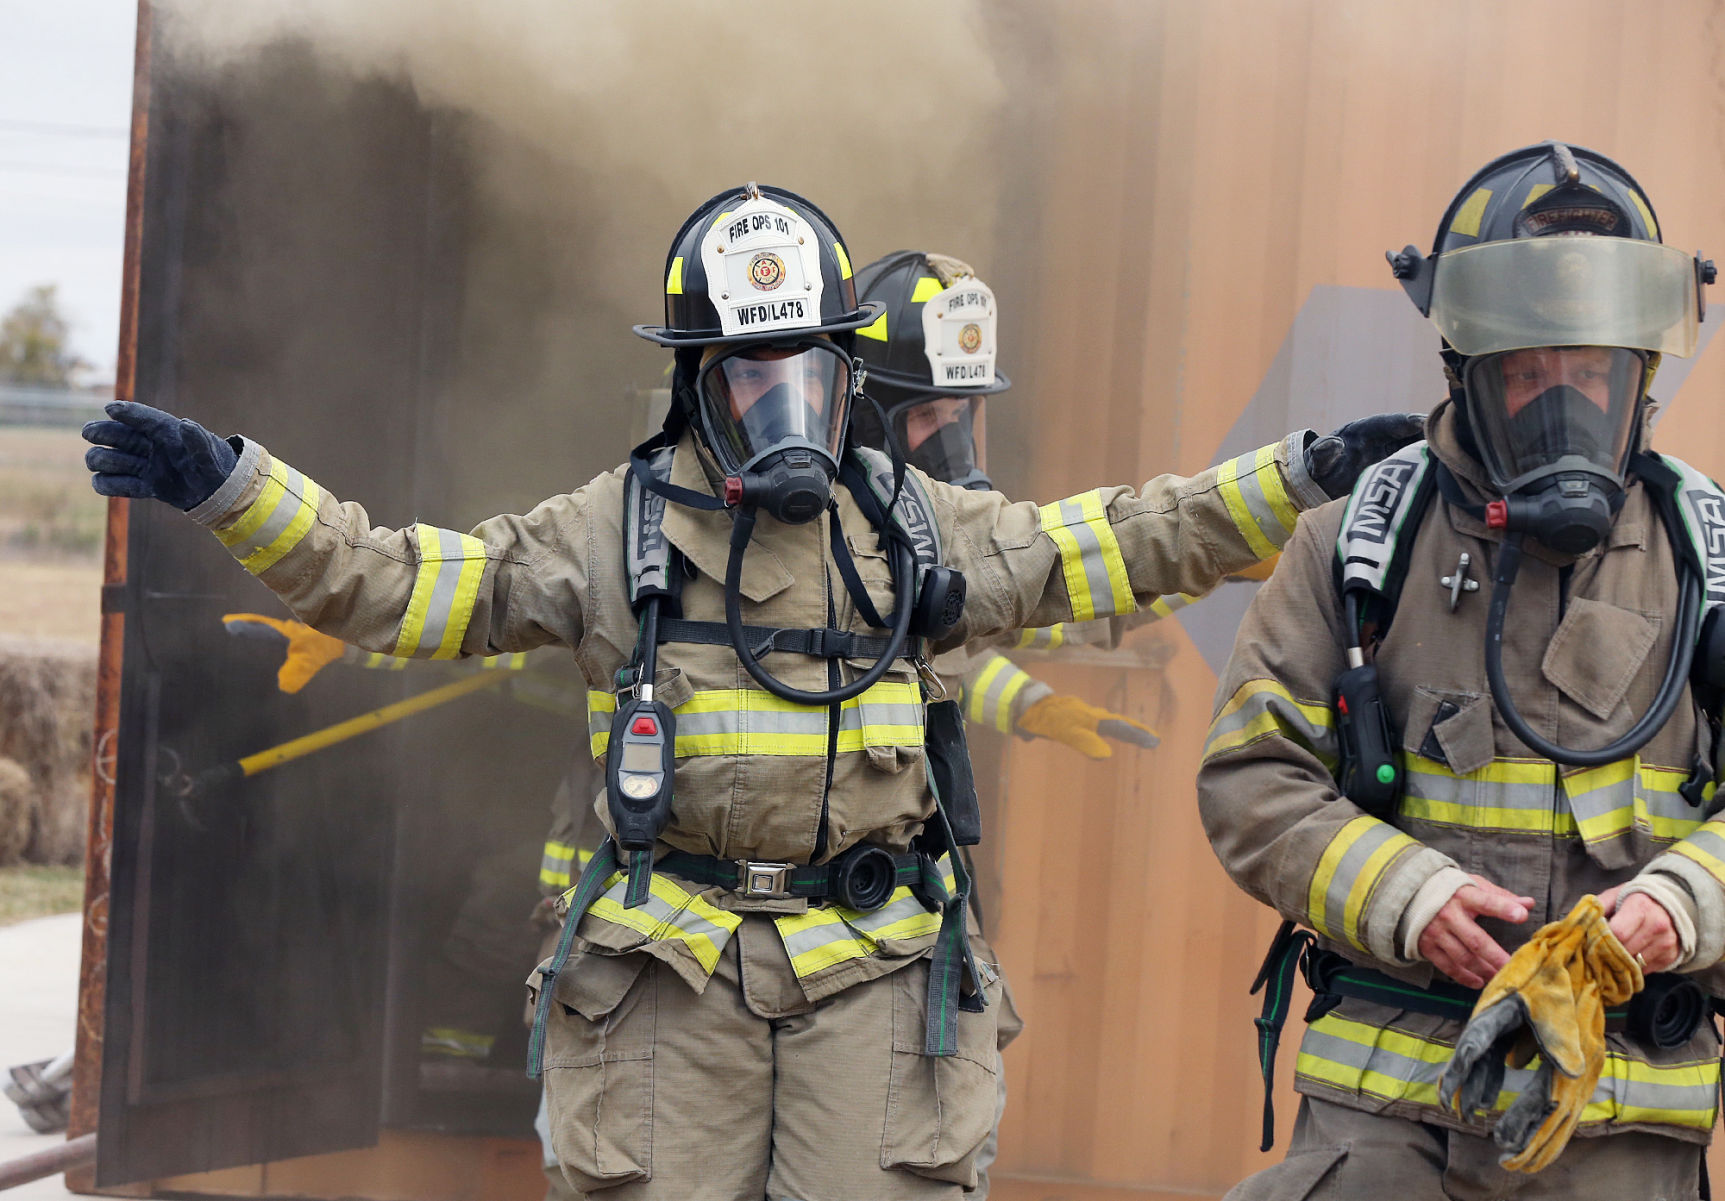 Fire exercises City officials get taste of